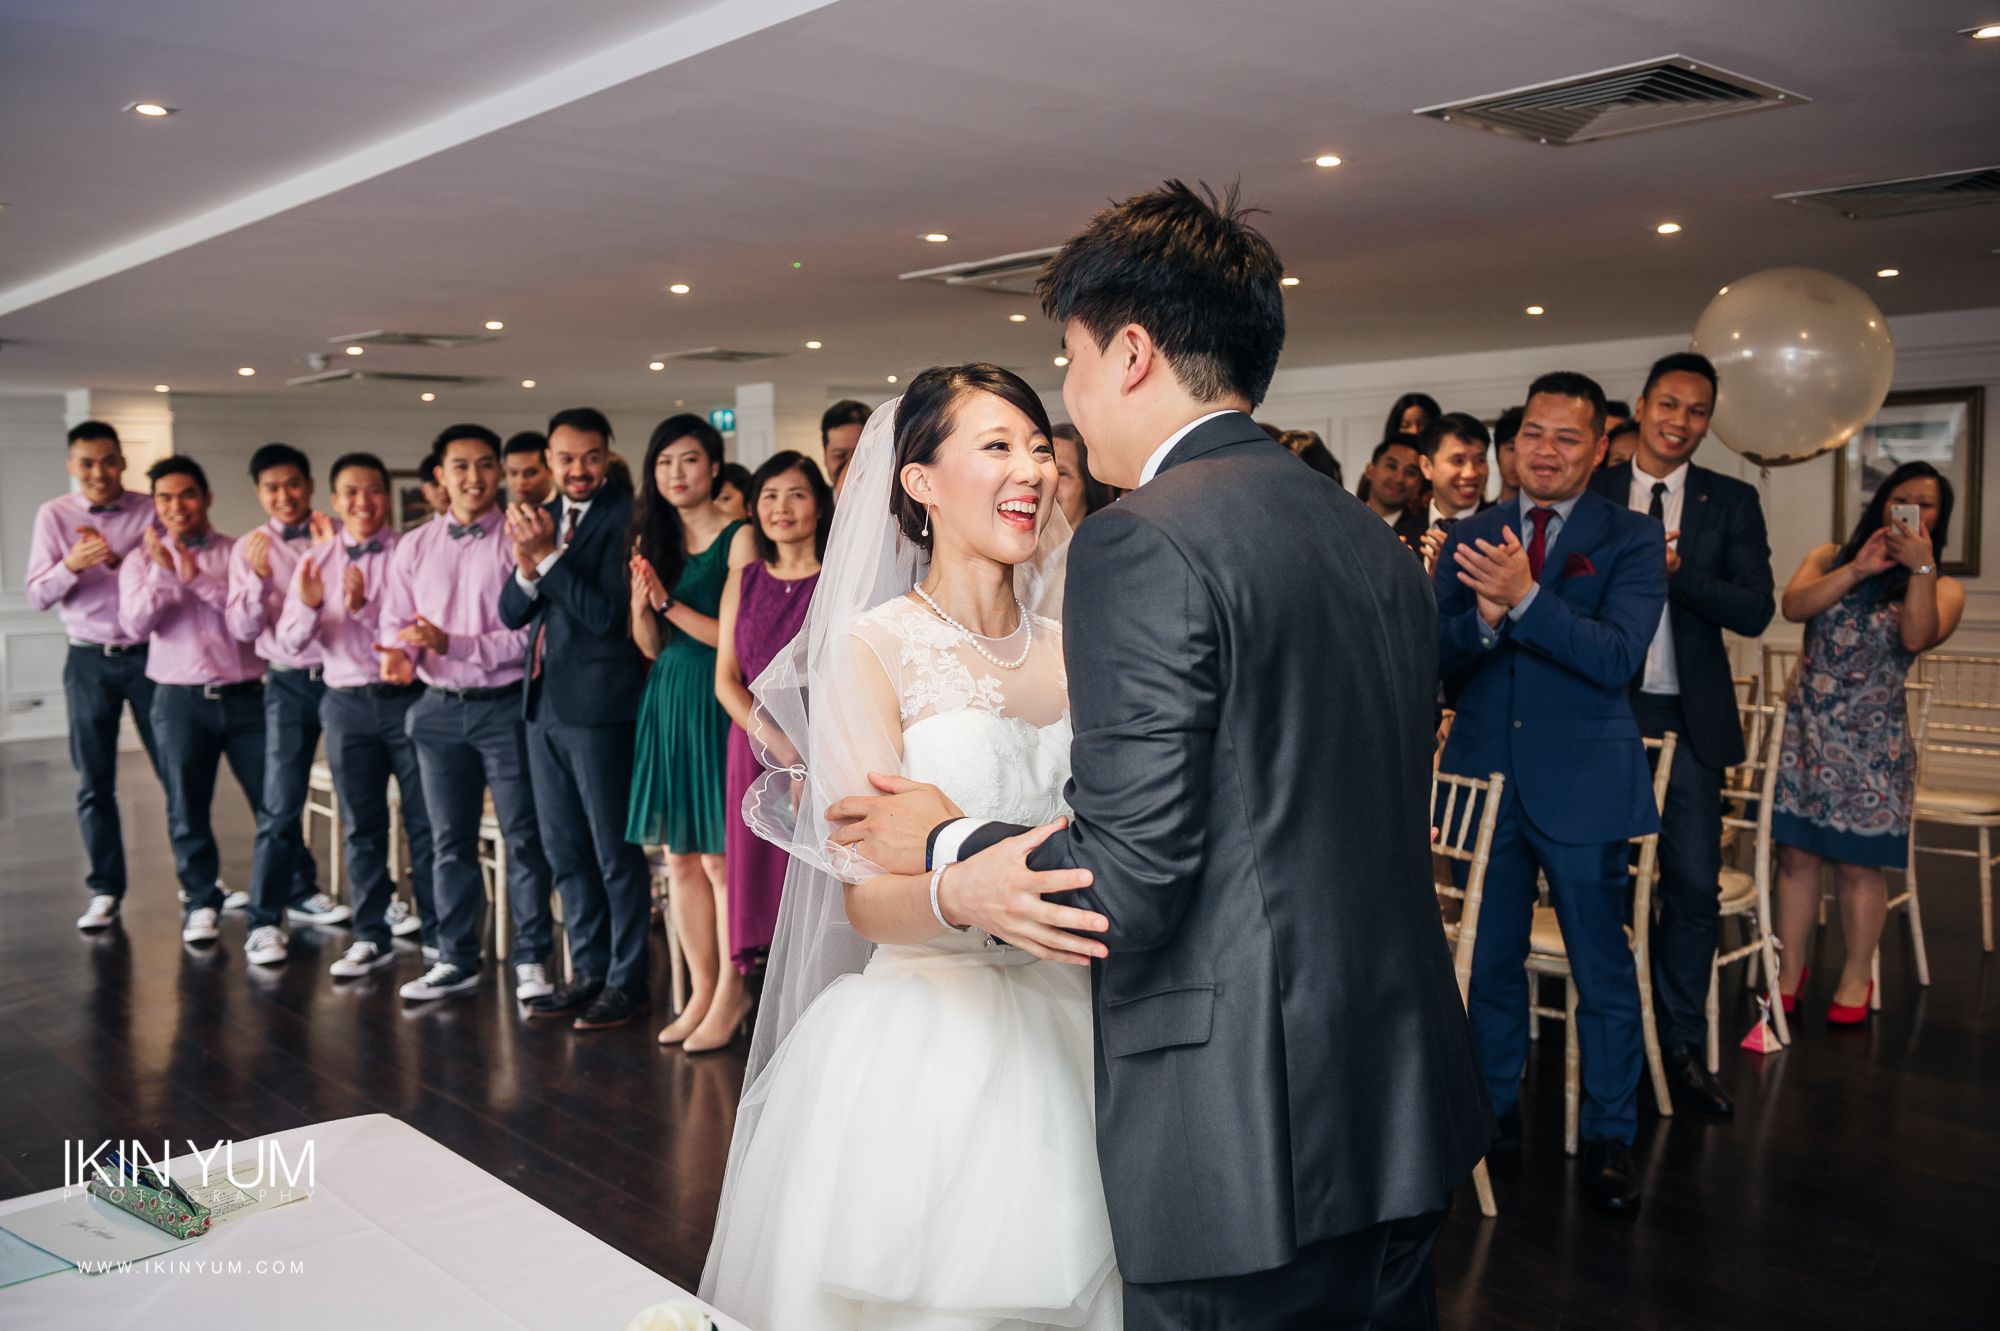 Mermaid river rooms Wedding - Ikin Yum Photography-066.jpg